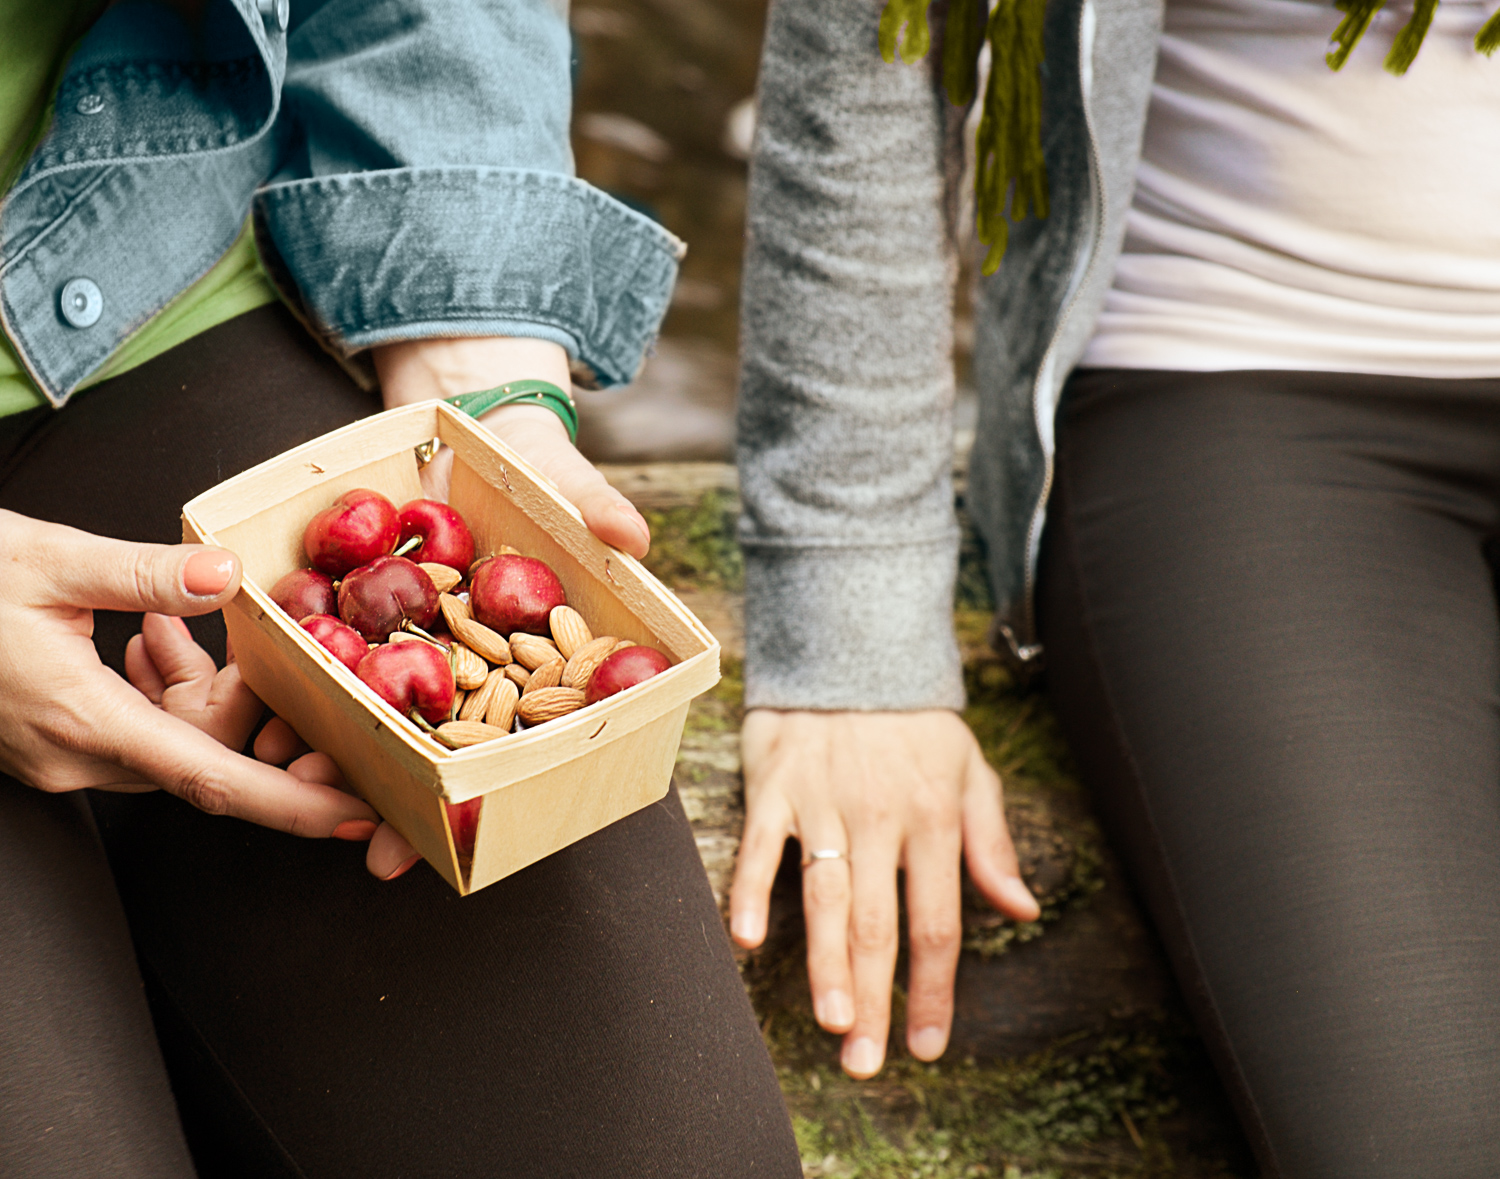 woman holding a box of strawberries